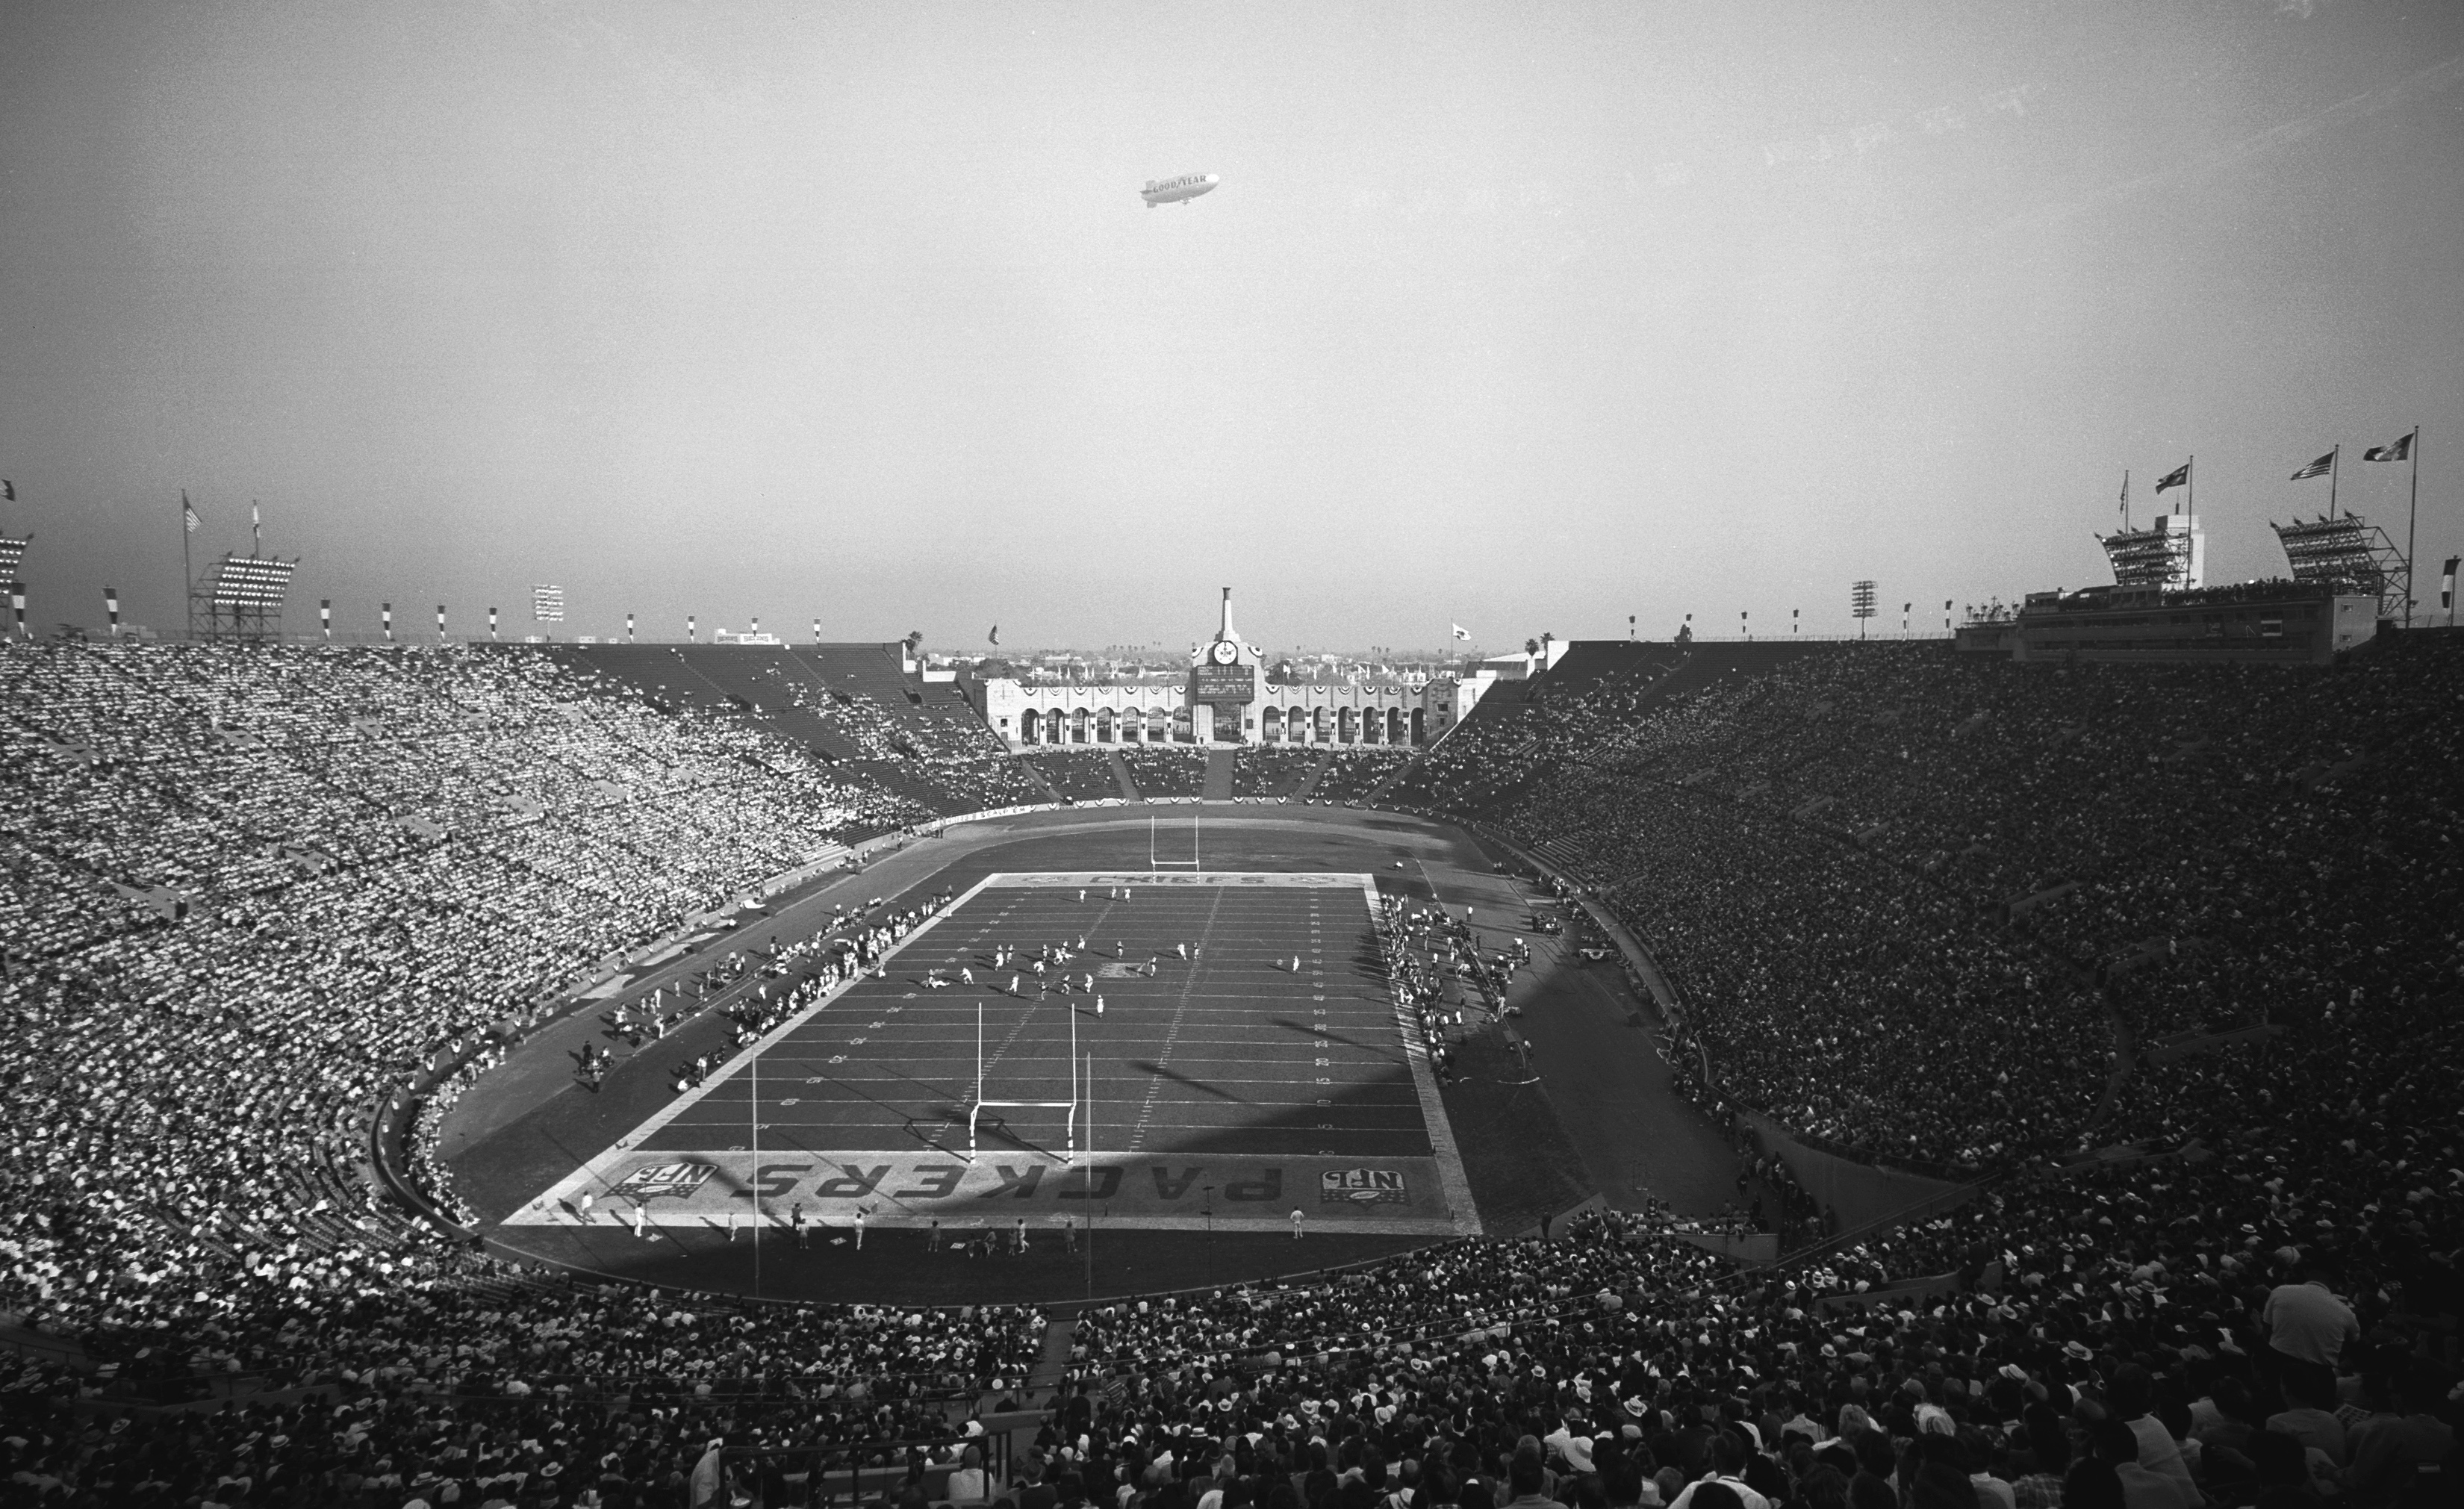 LOS ANGELES - JANUARY 15: The First World Championship Game, AFL vs. NFL, later known as Super Bowl I, on January 15, 1967 at the Los Angeles Memorial Coliseum in Los Angeles, California. (Photo by CBS via Getty Images)